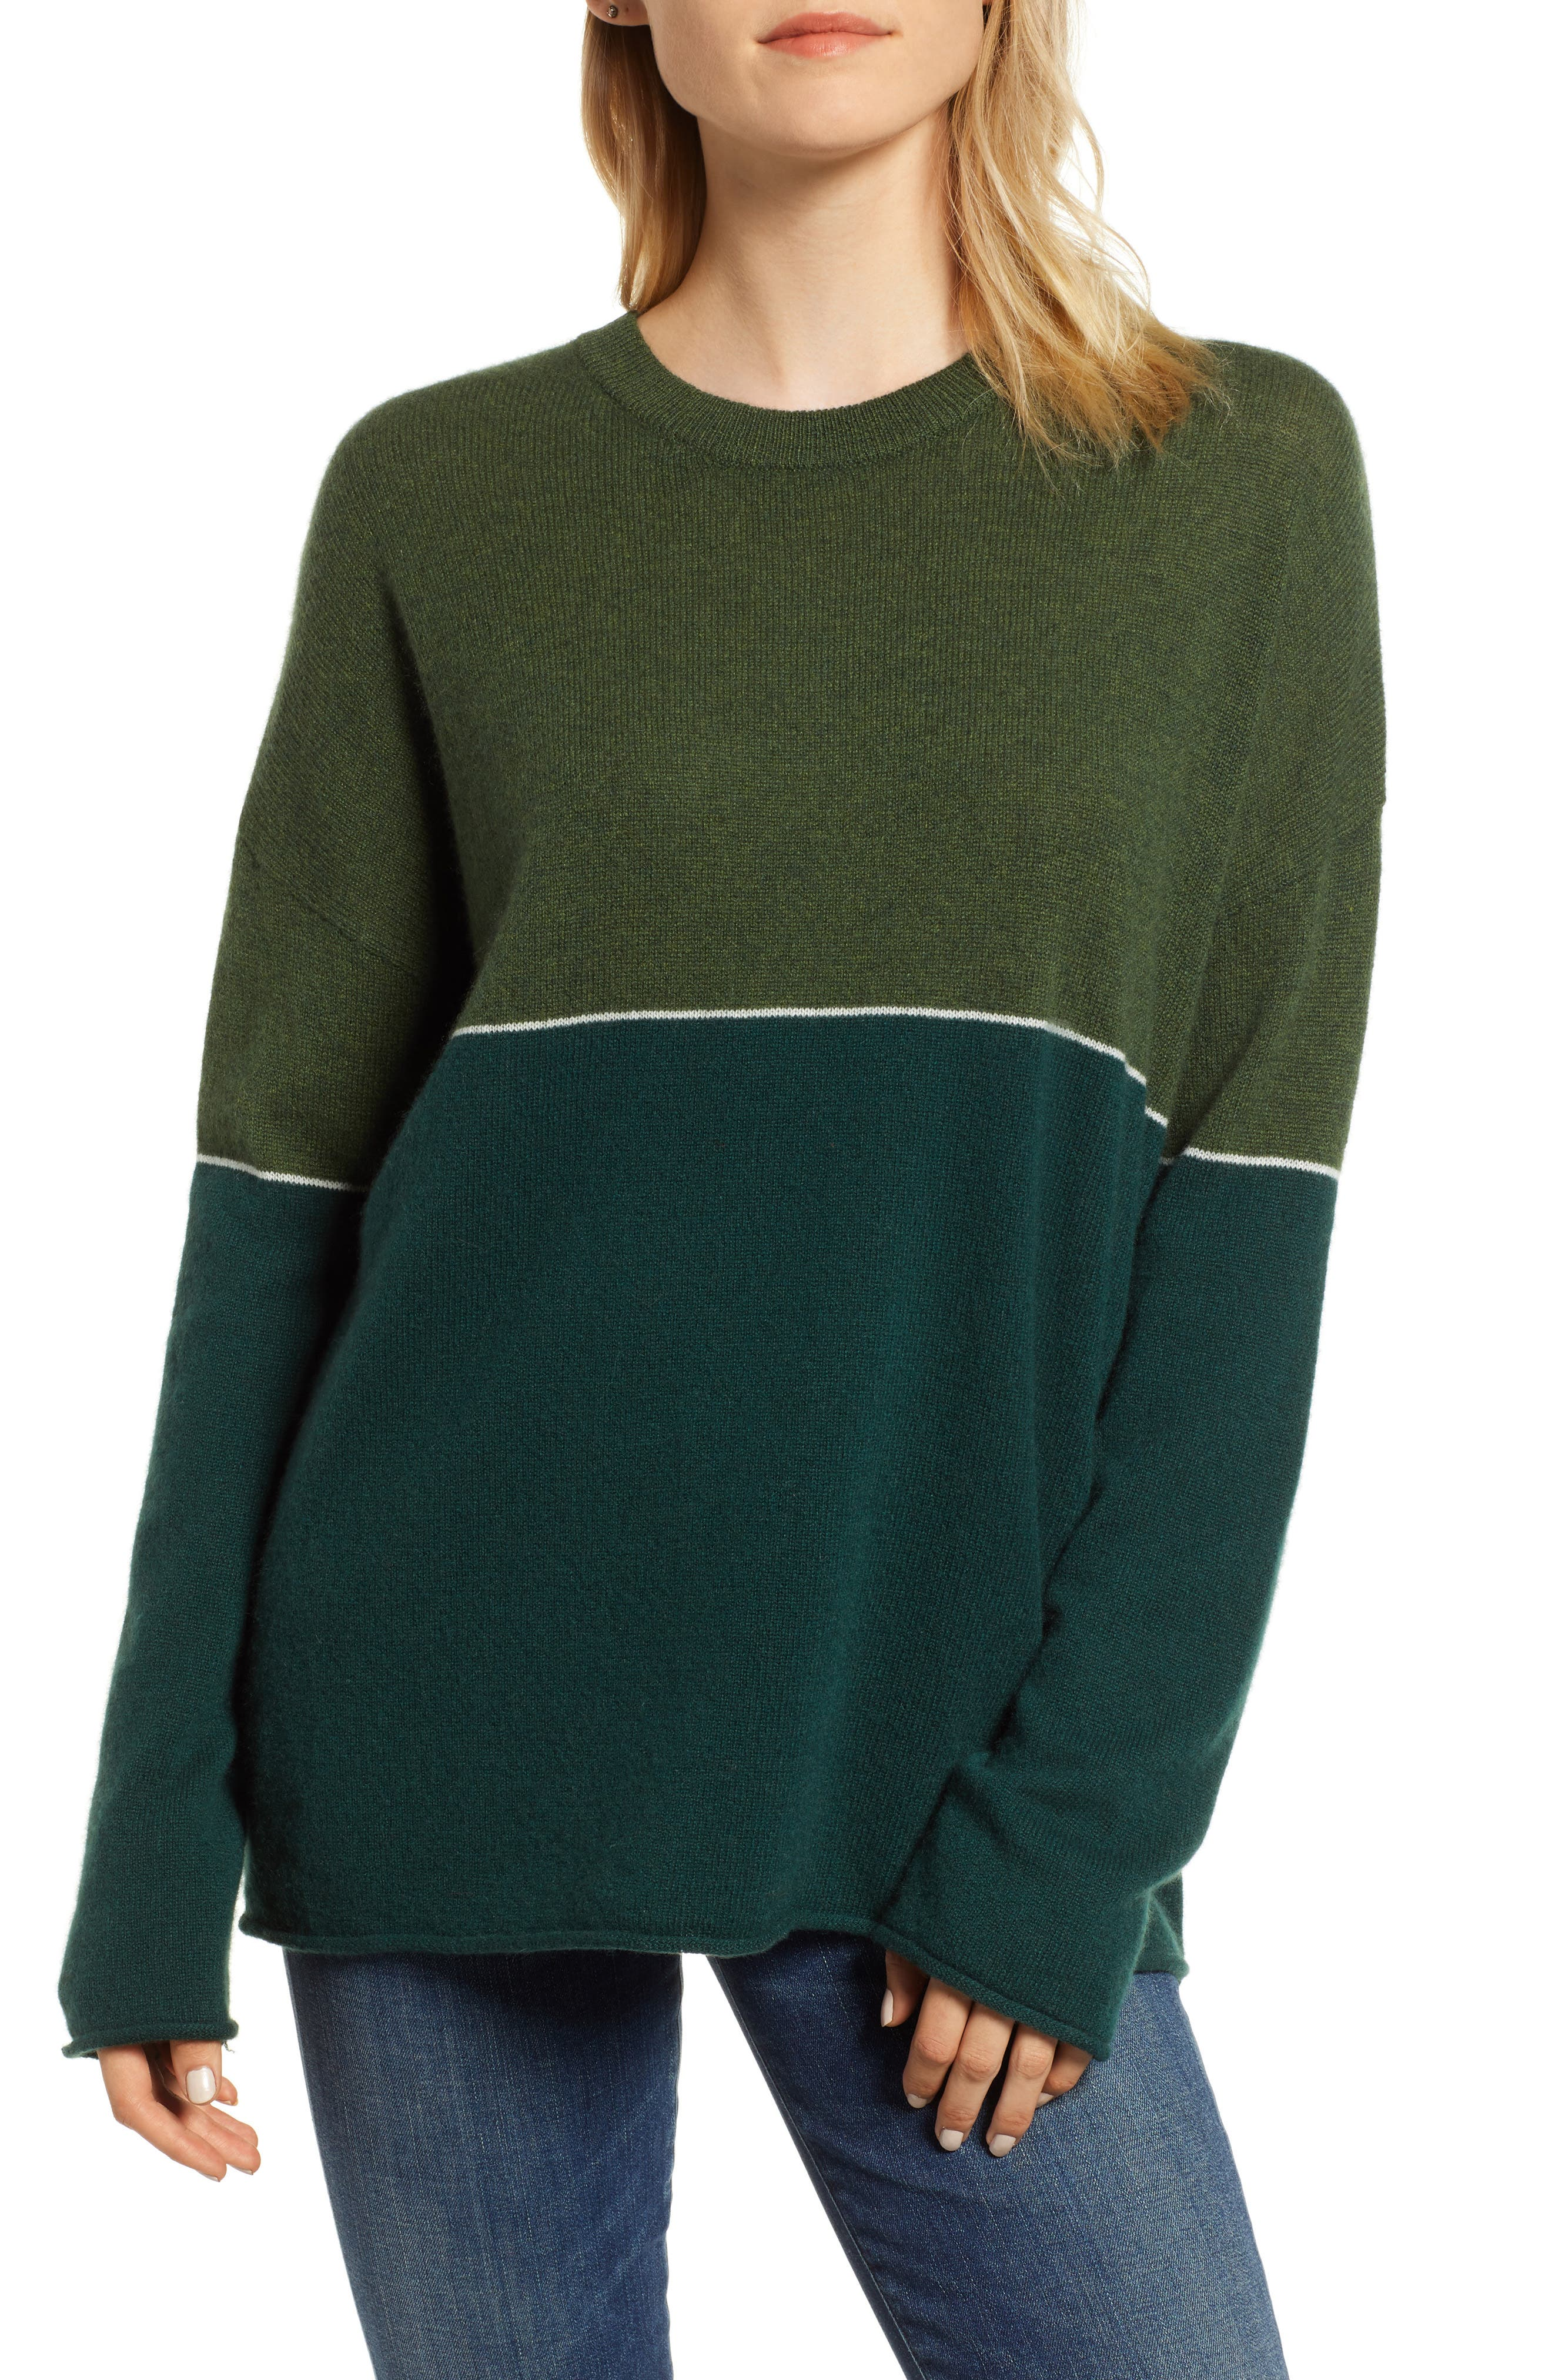 Cashmere Colorblock Sweater,                             Main thumbnail 1, color,                             FOREST/ ARMY